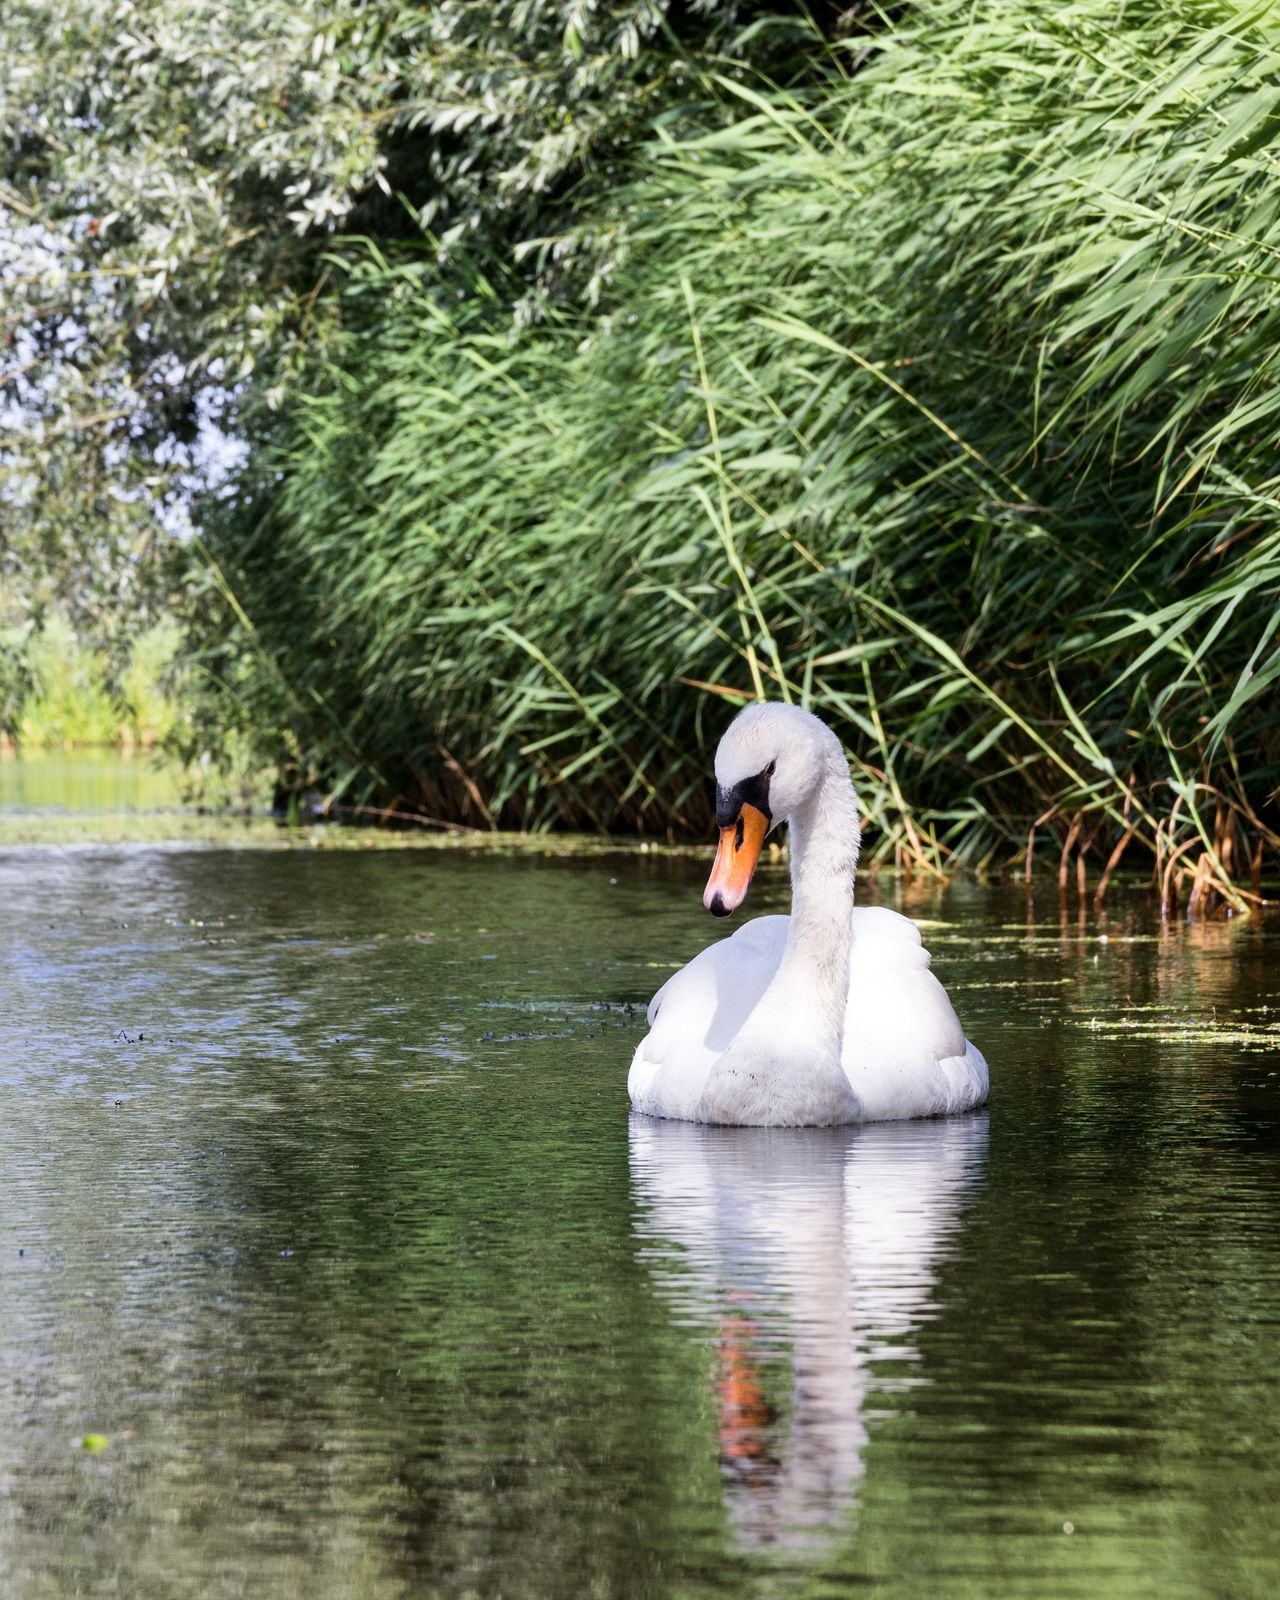 Water Lake Nature Day One Animal Outdoors Swimming Beauty In Nature Animals In The Wild Animal Themes No People Bird Swan